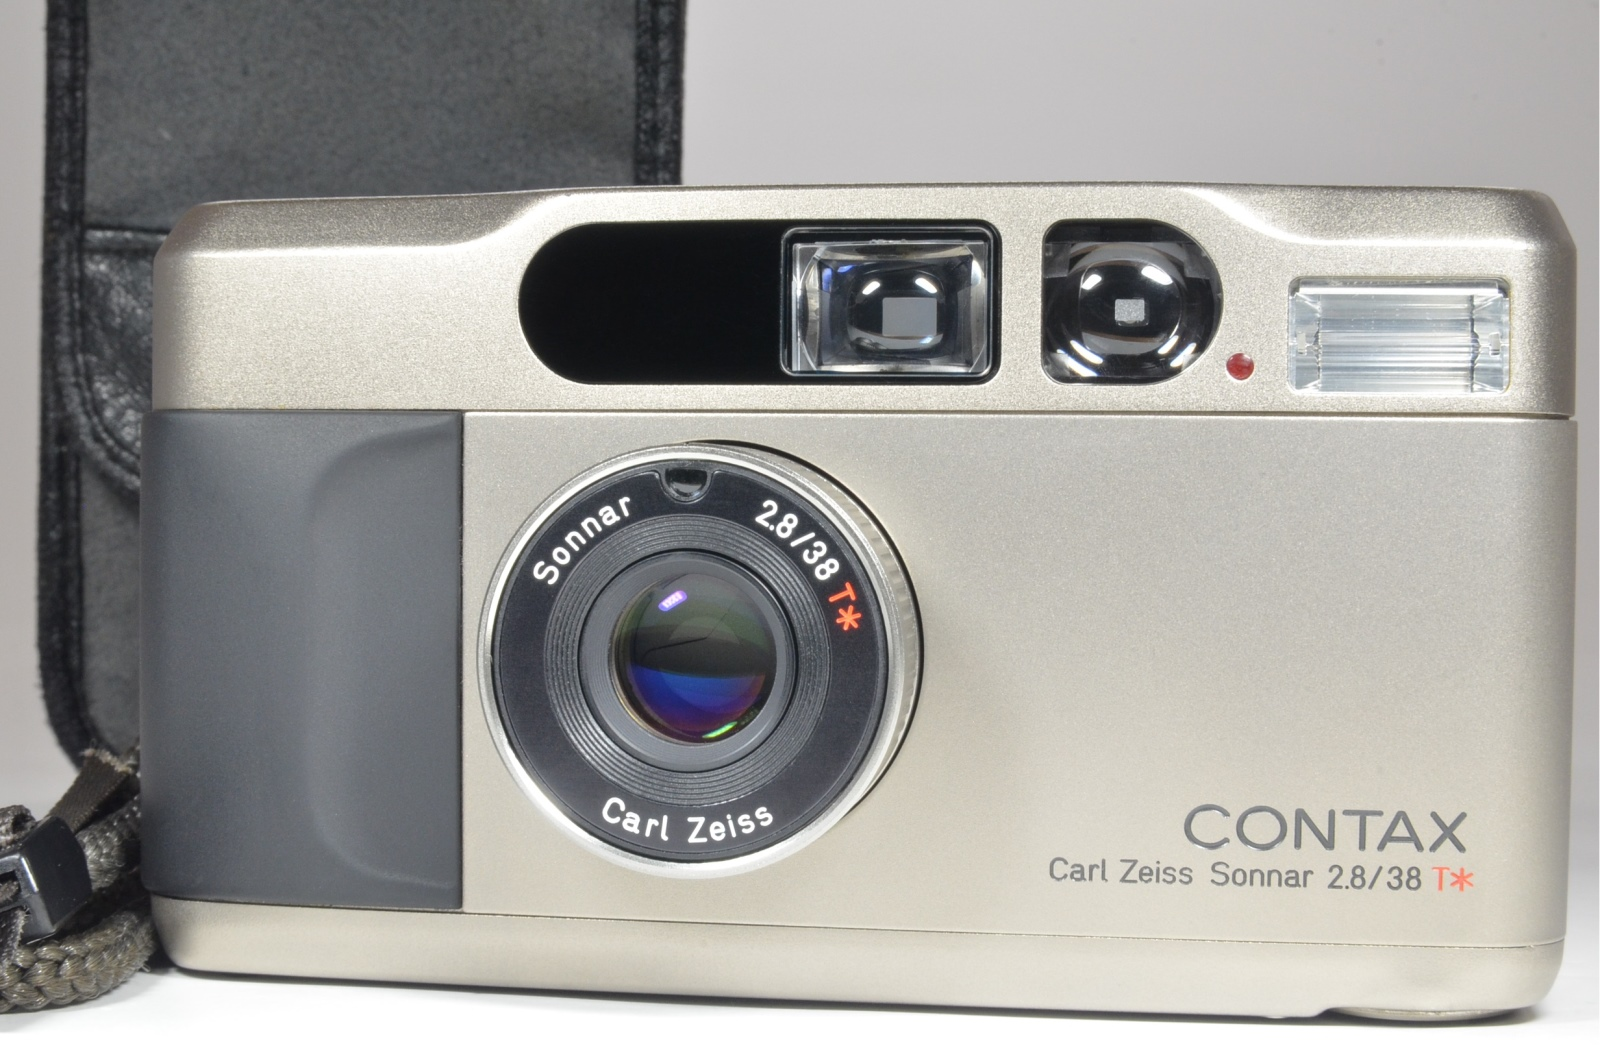 contax t2 data back p&s 35mm film camera full leather case